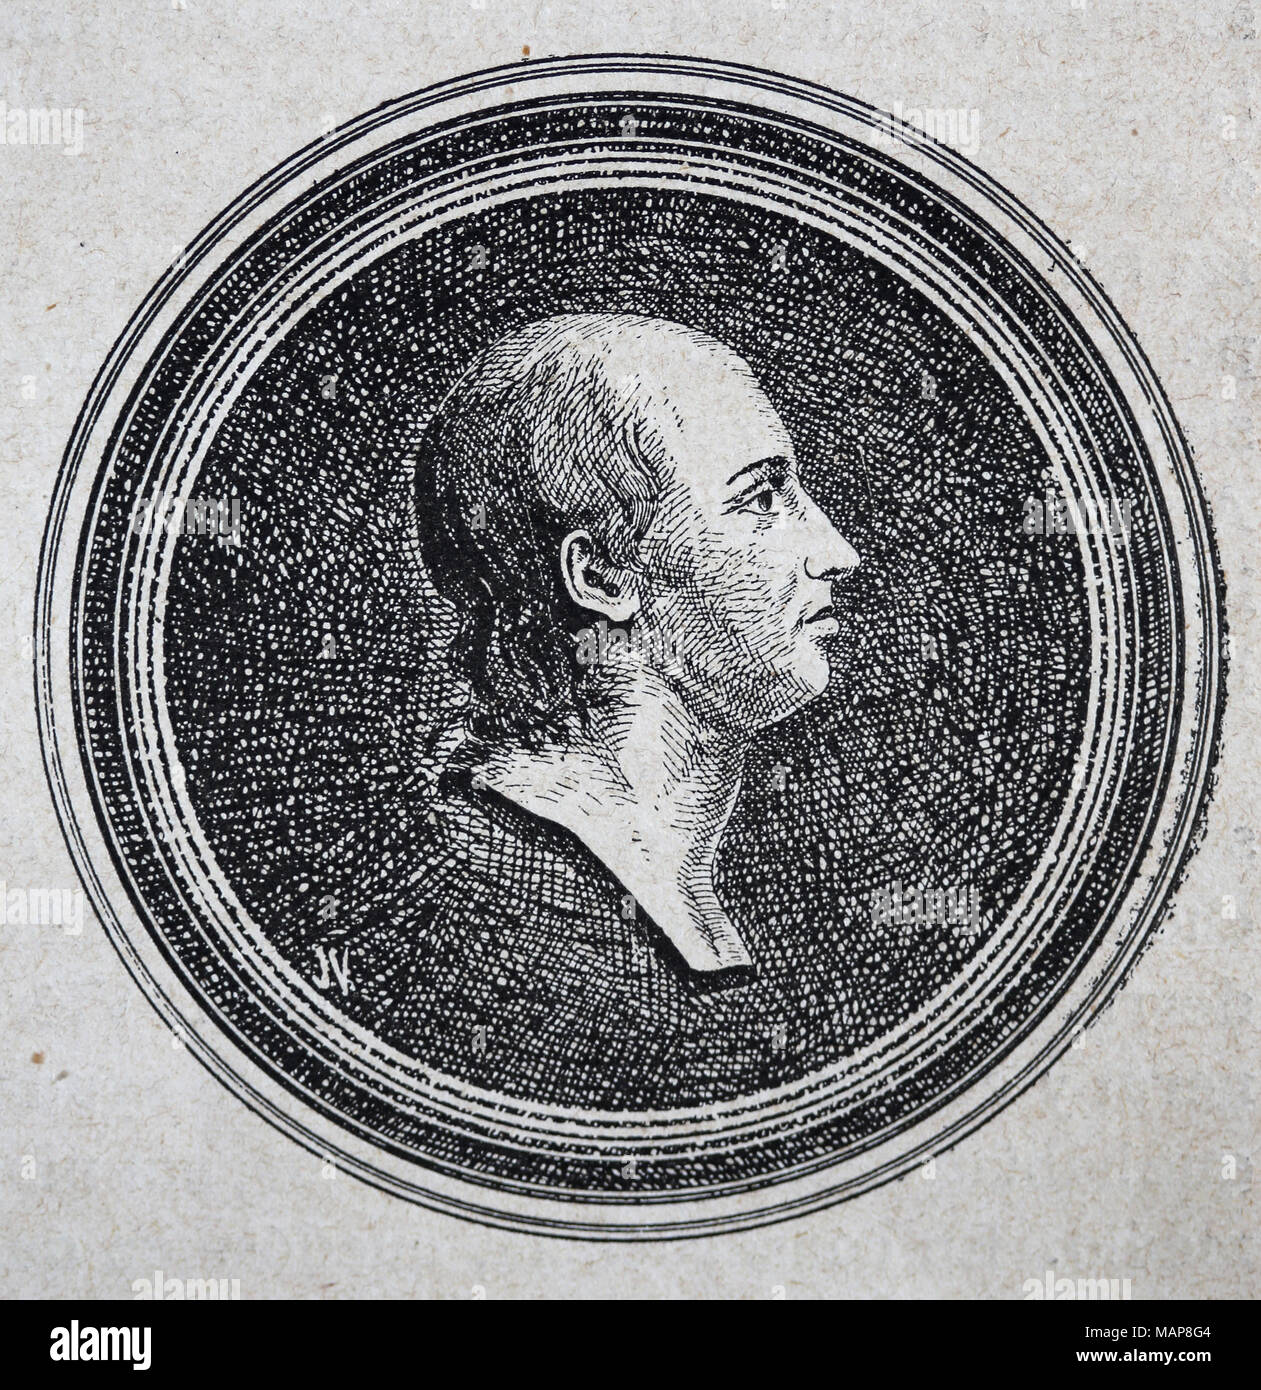 Emmanuel Joseph Sieyes (1748-1836) or Abbe Sieyes. French clergyman and political writer. Engraving, 19th cent. - Stock Image